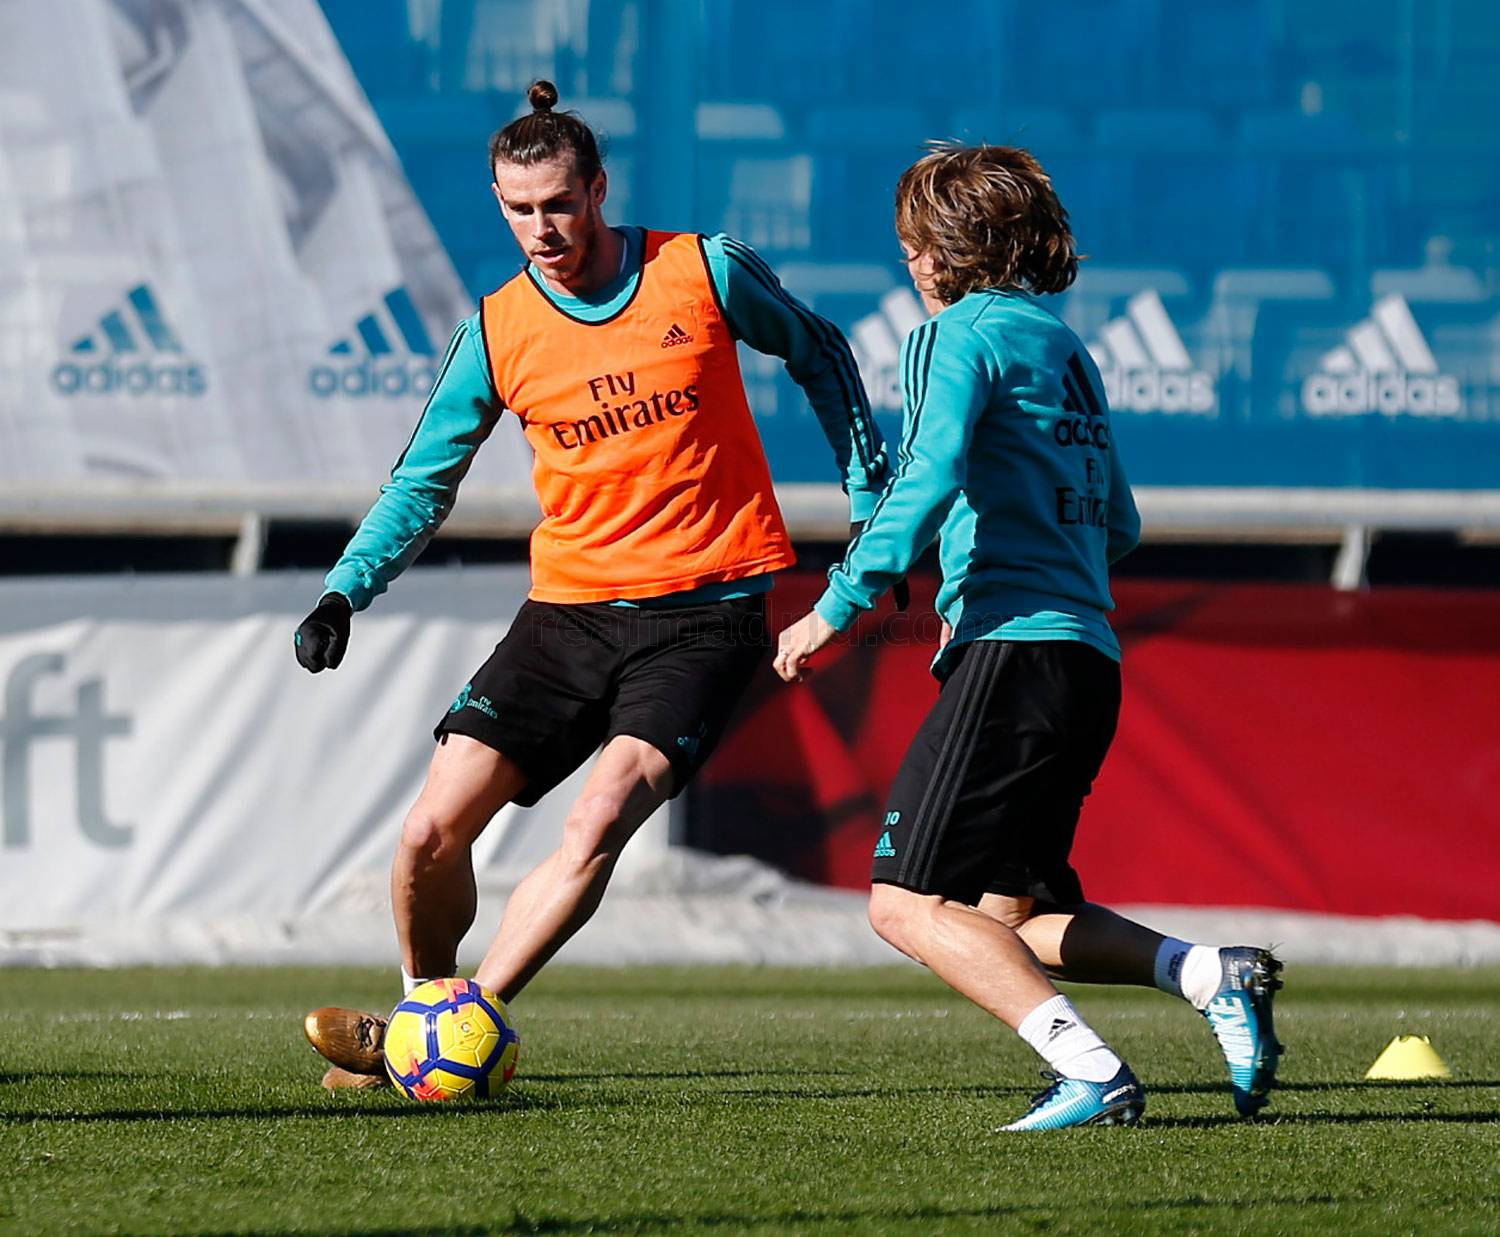 Real Madrid - Entrenamiento del Real Madrid - 19-01-2018